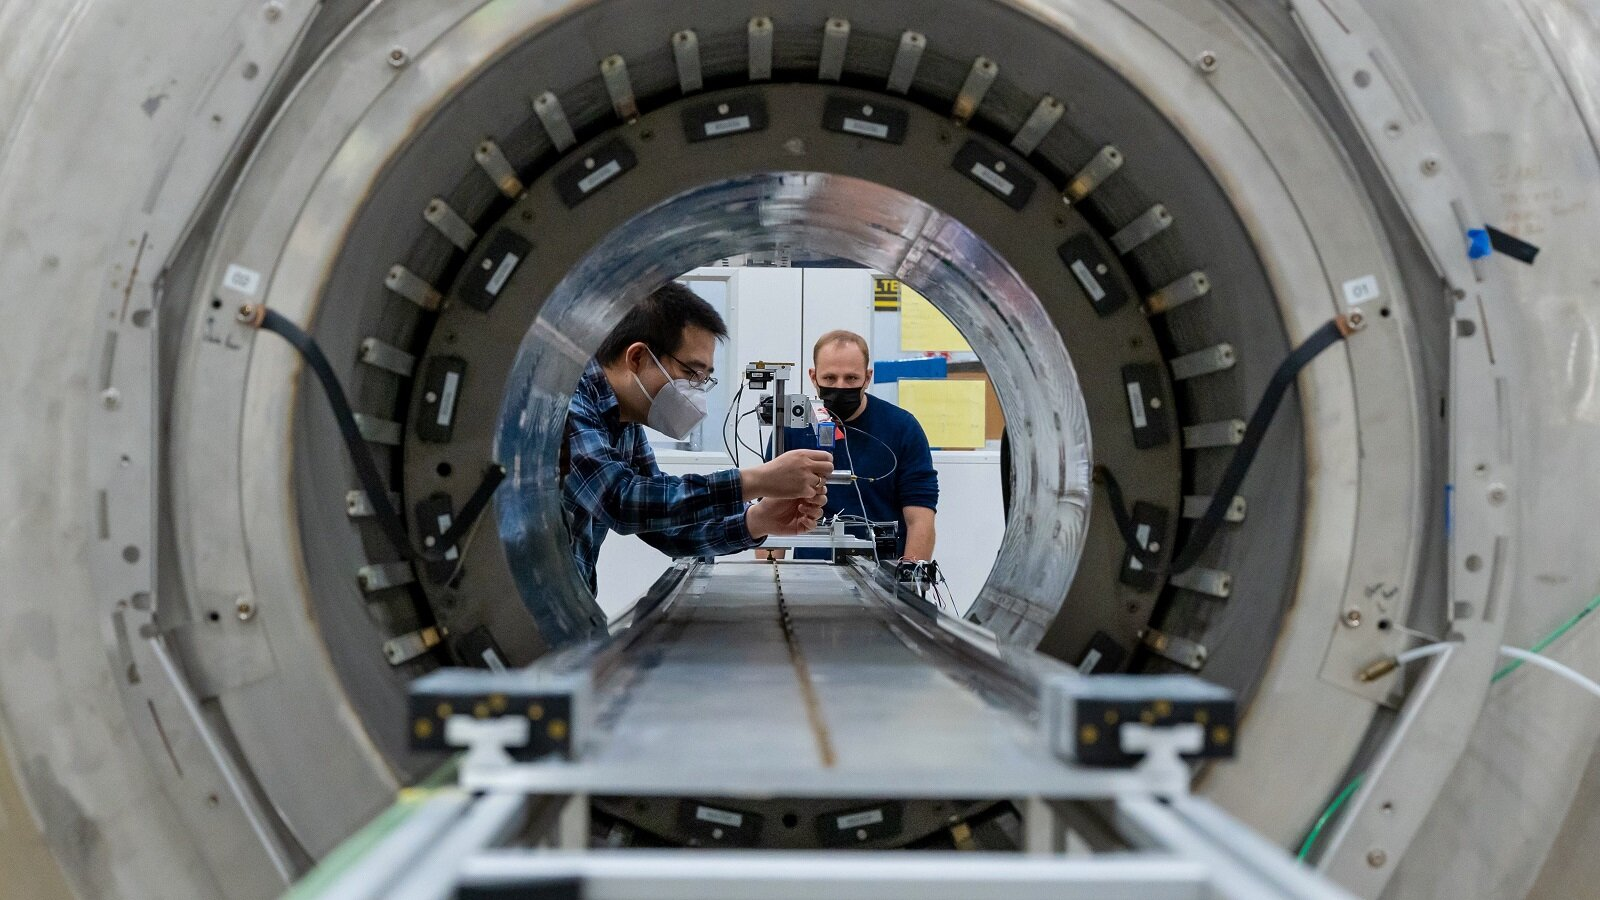 Field guides: Scientists bolster evidence of new physics in Muon g-2 experiment - Phys.org